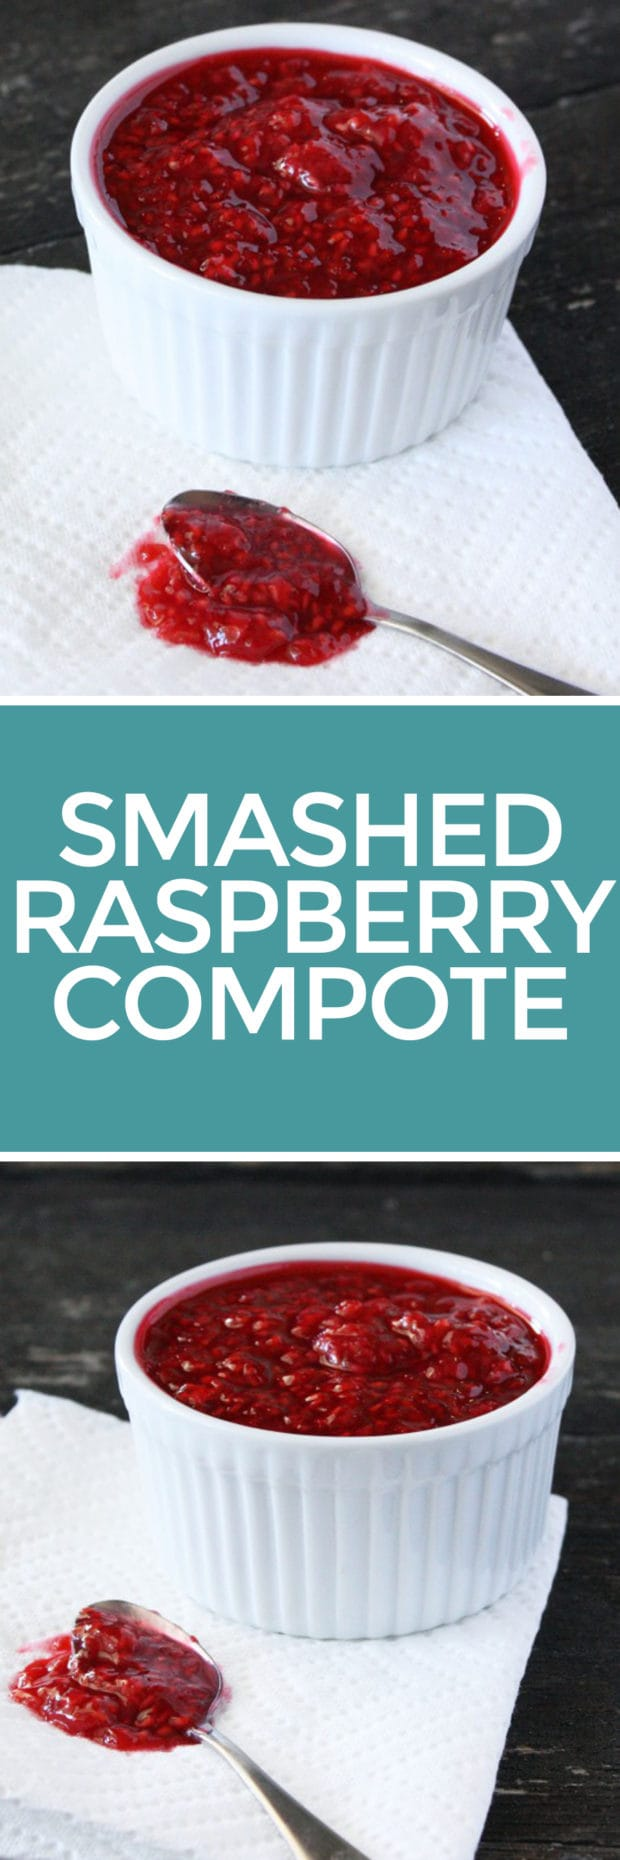 smashed-raspberry-compote